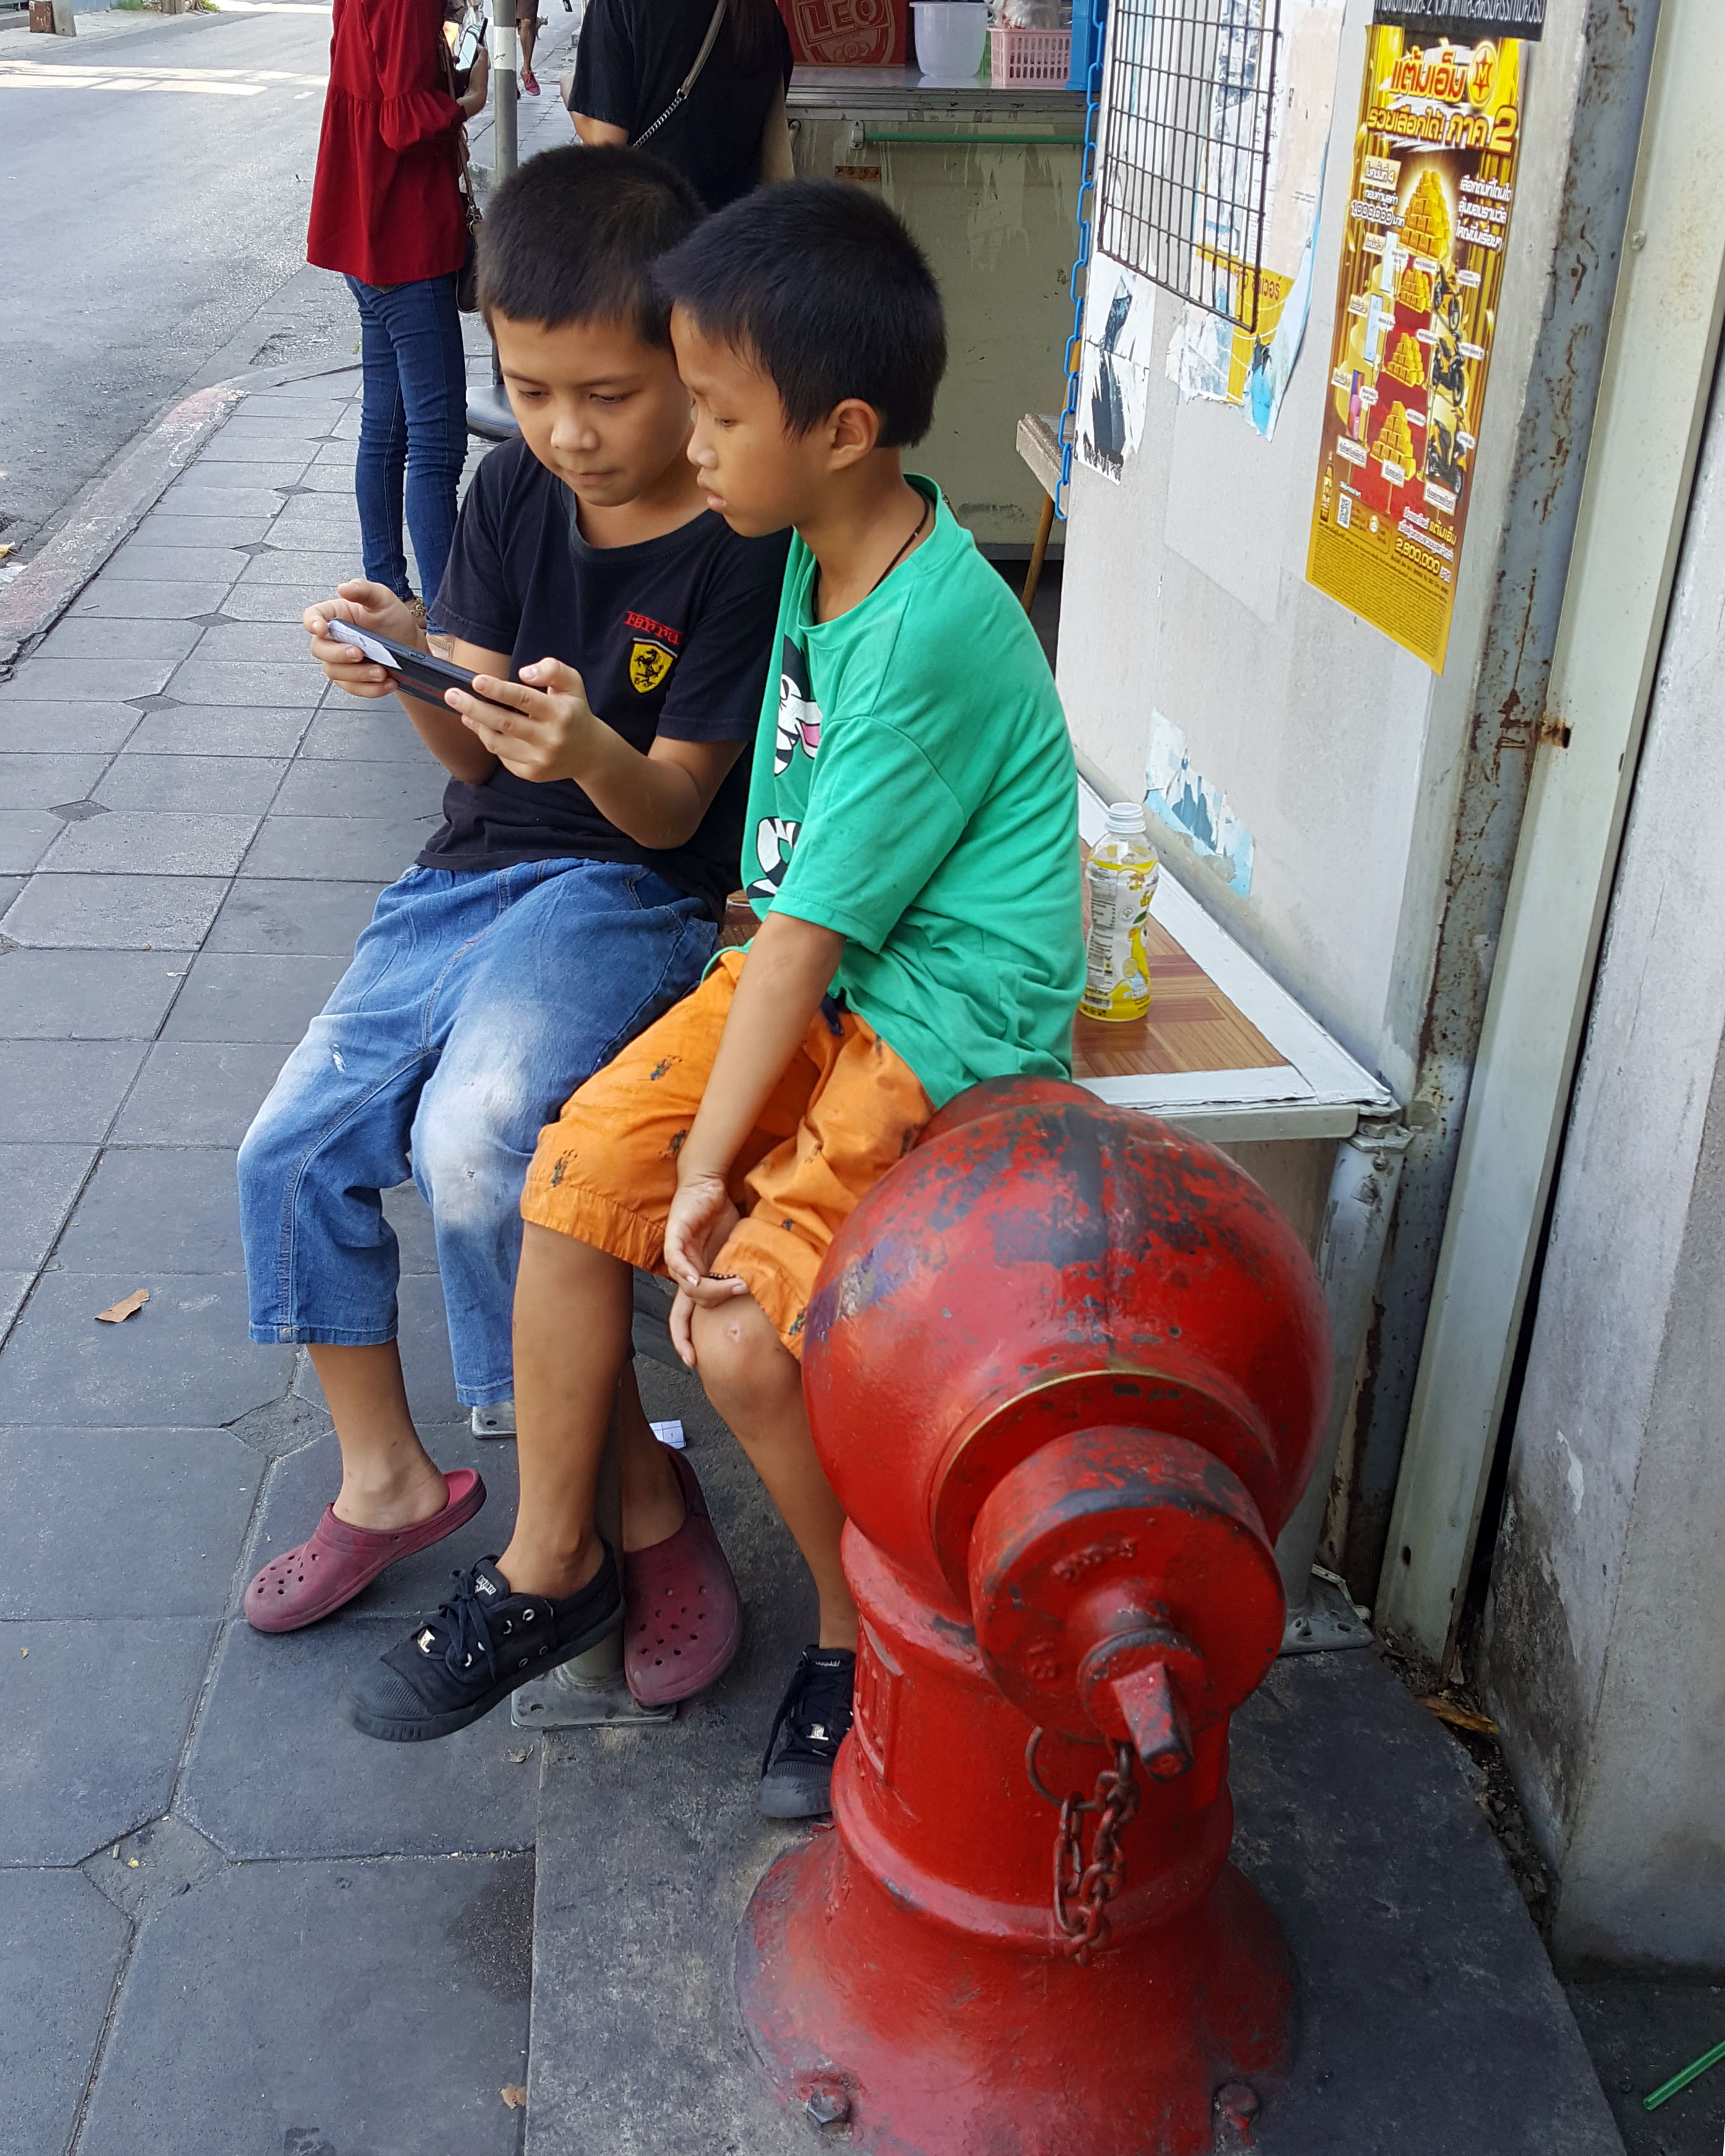 Kids next to a hydrant